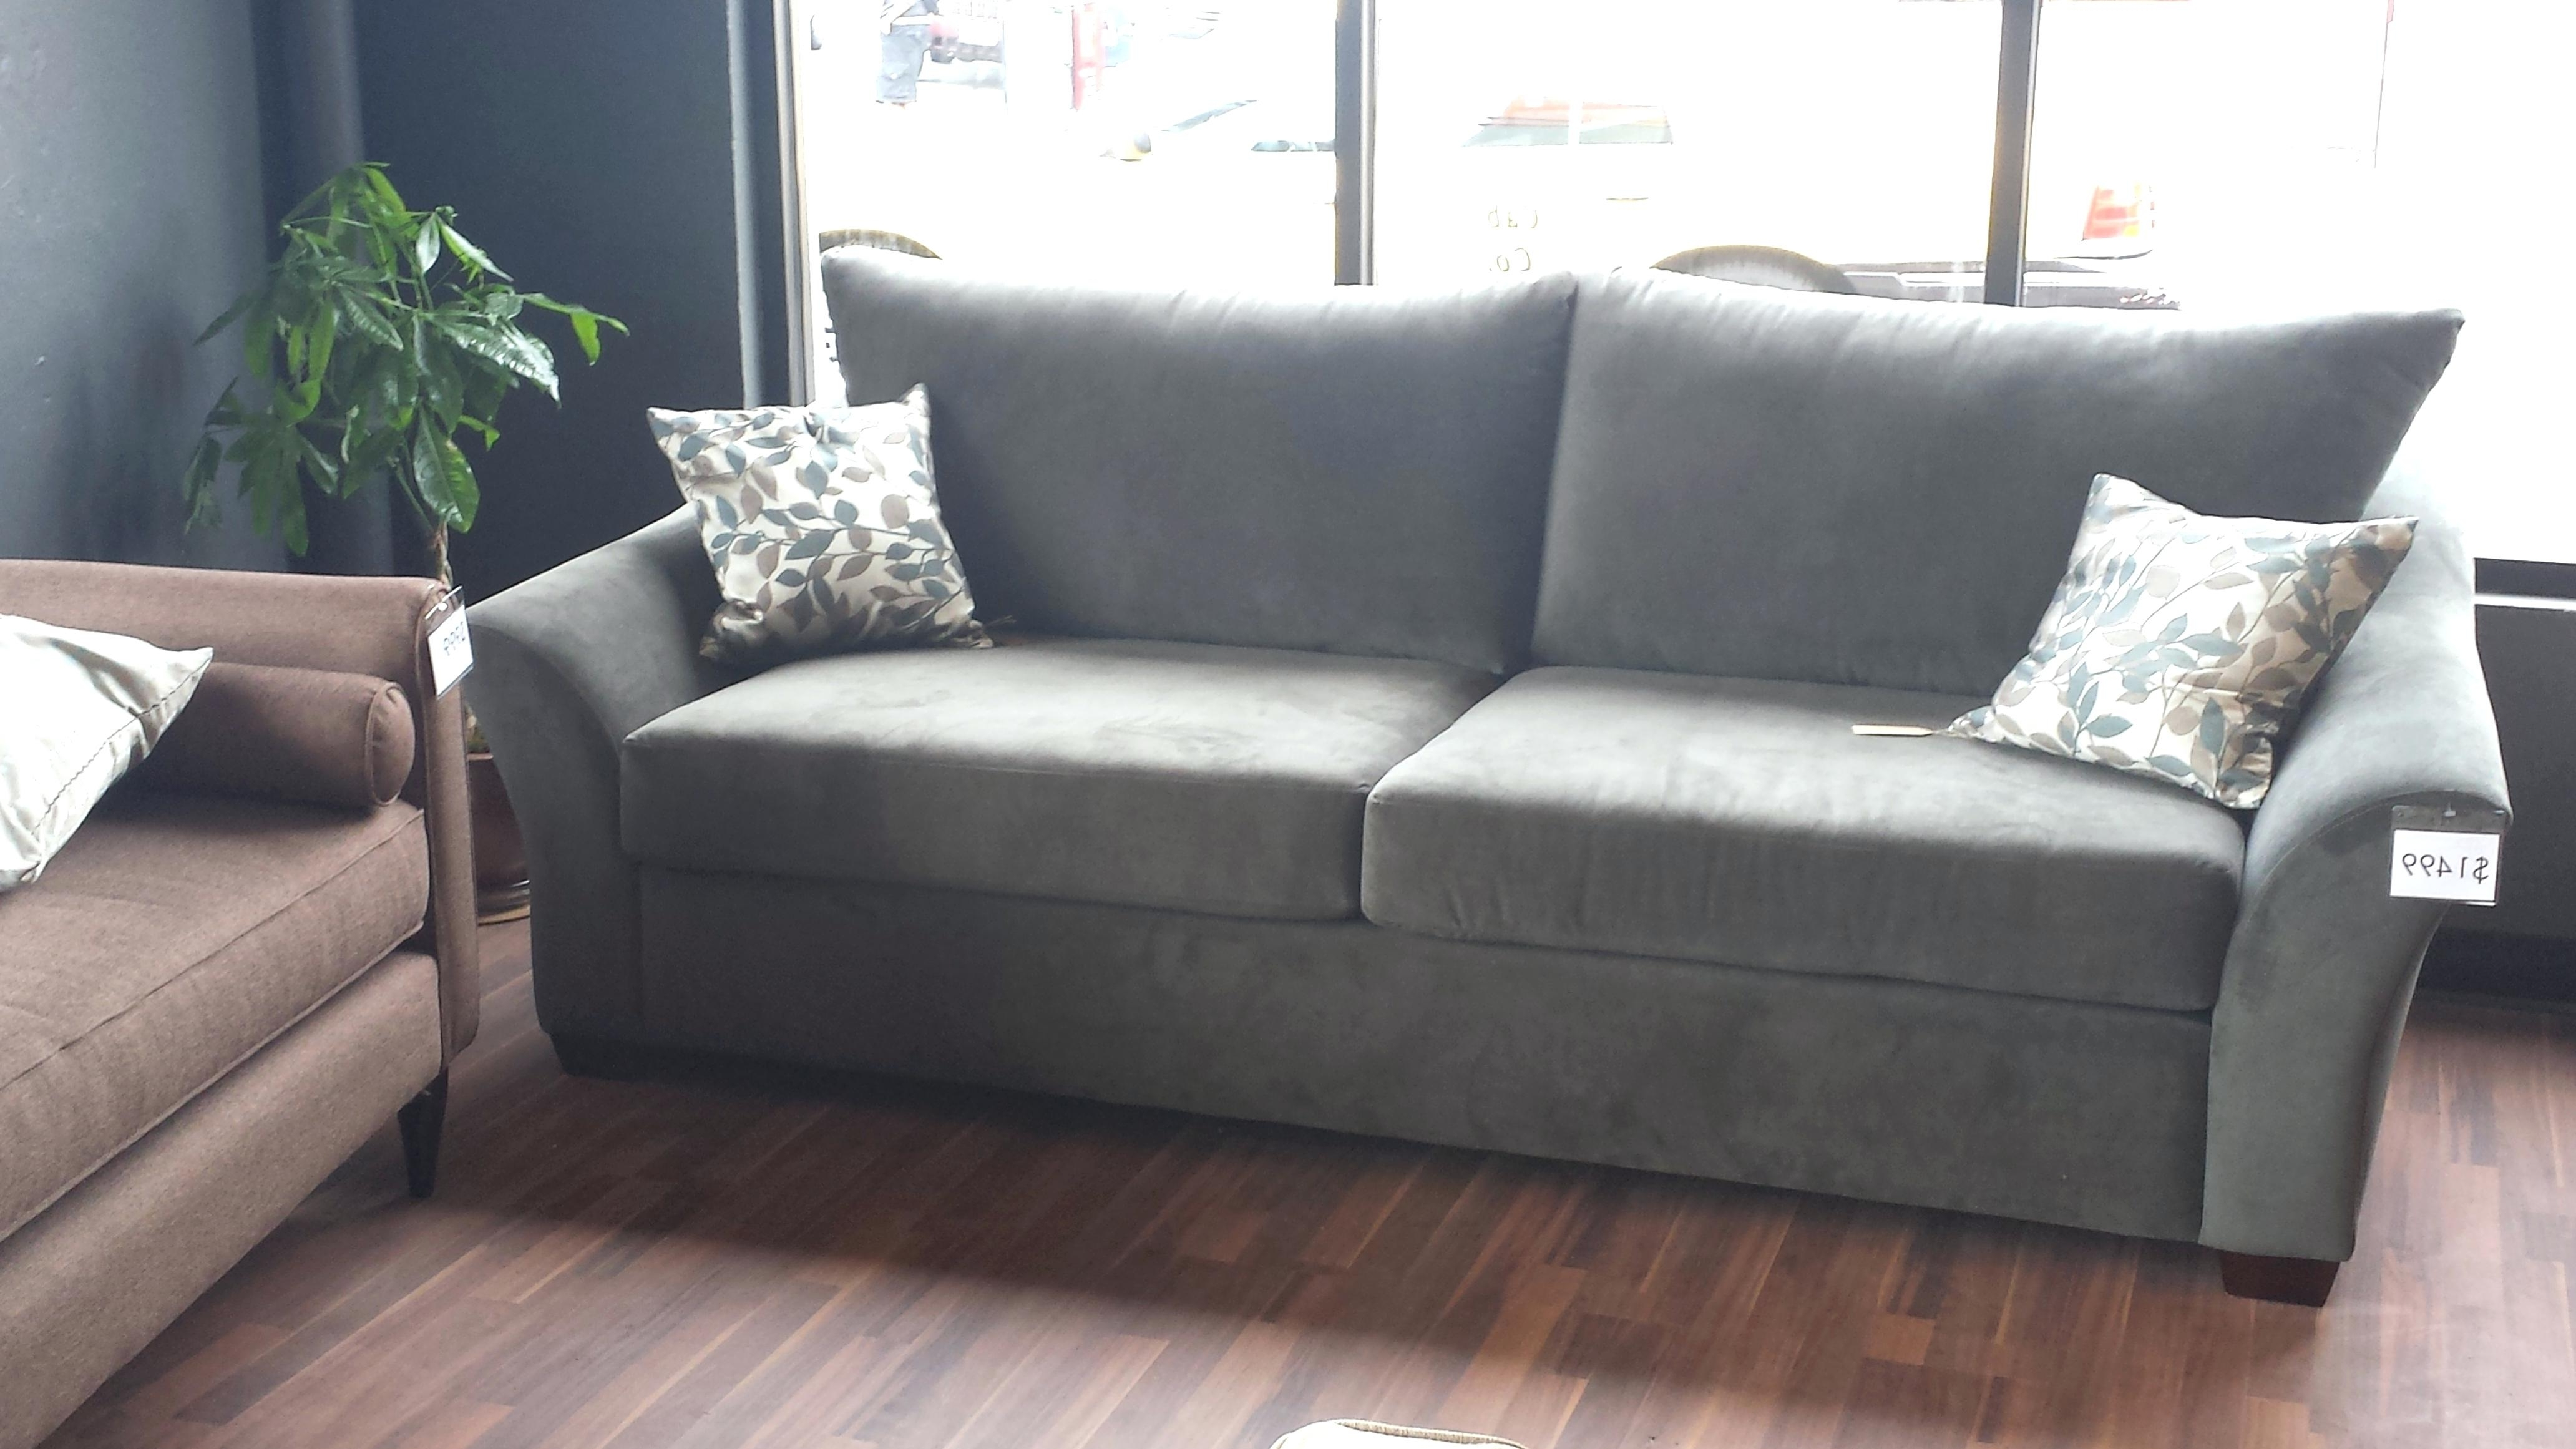 2018 Deep Cushion Sofas Intended For Deep Sectional Couch – Ncgeconference (View 1 of 20)